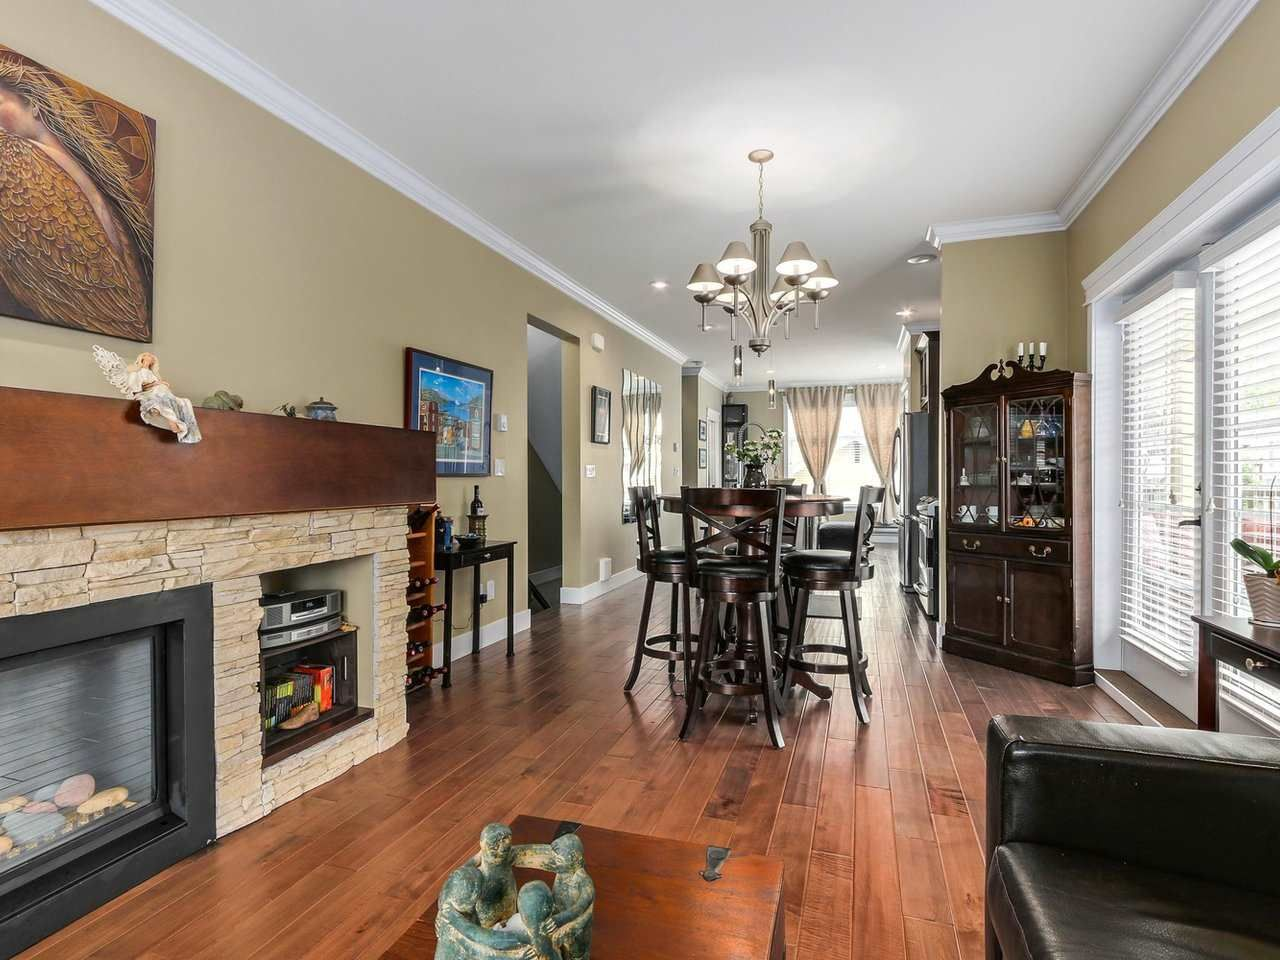 """Photo 4: Photos: 31 17171 2B Avenue in Surrey: Pacific Douglas Townhouse for sale in """"AUGUSTA TOWNHOUSES"""" (South Surrey White Rock)  : MLS®# R2280398"""